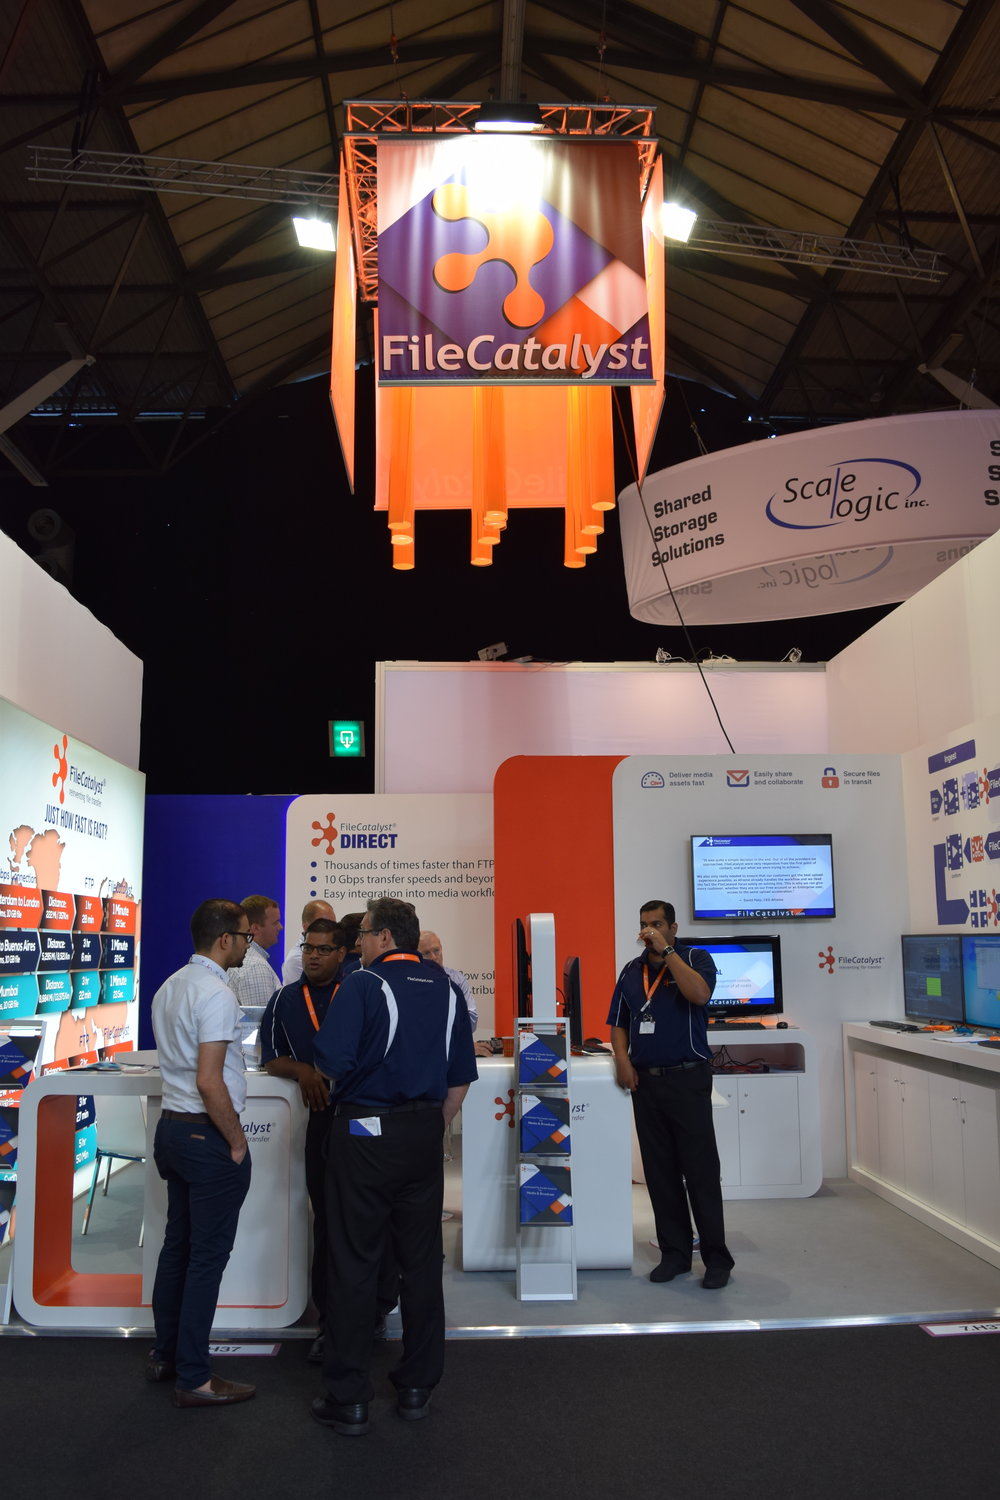 File Catalyst at IBC trade show 2016